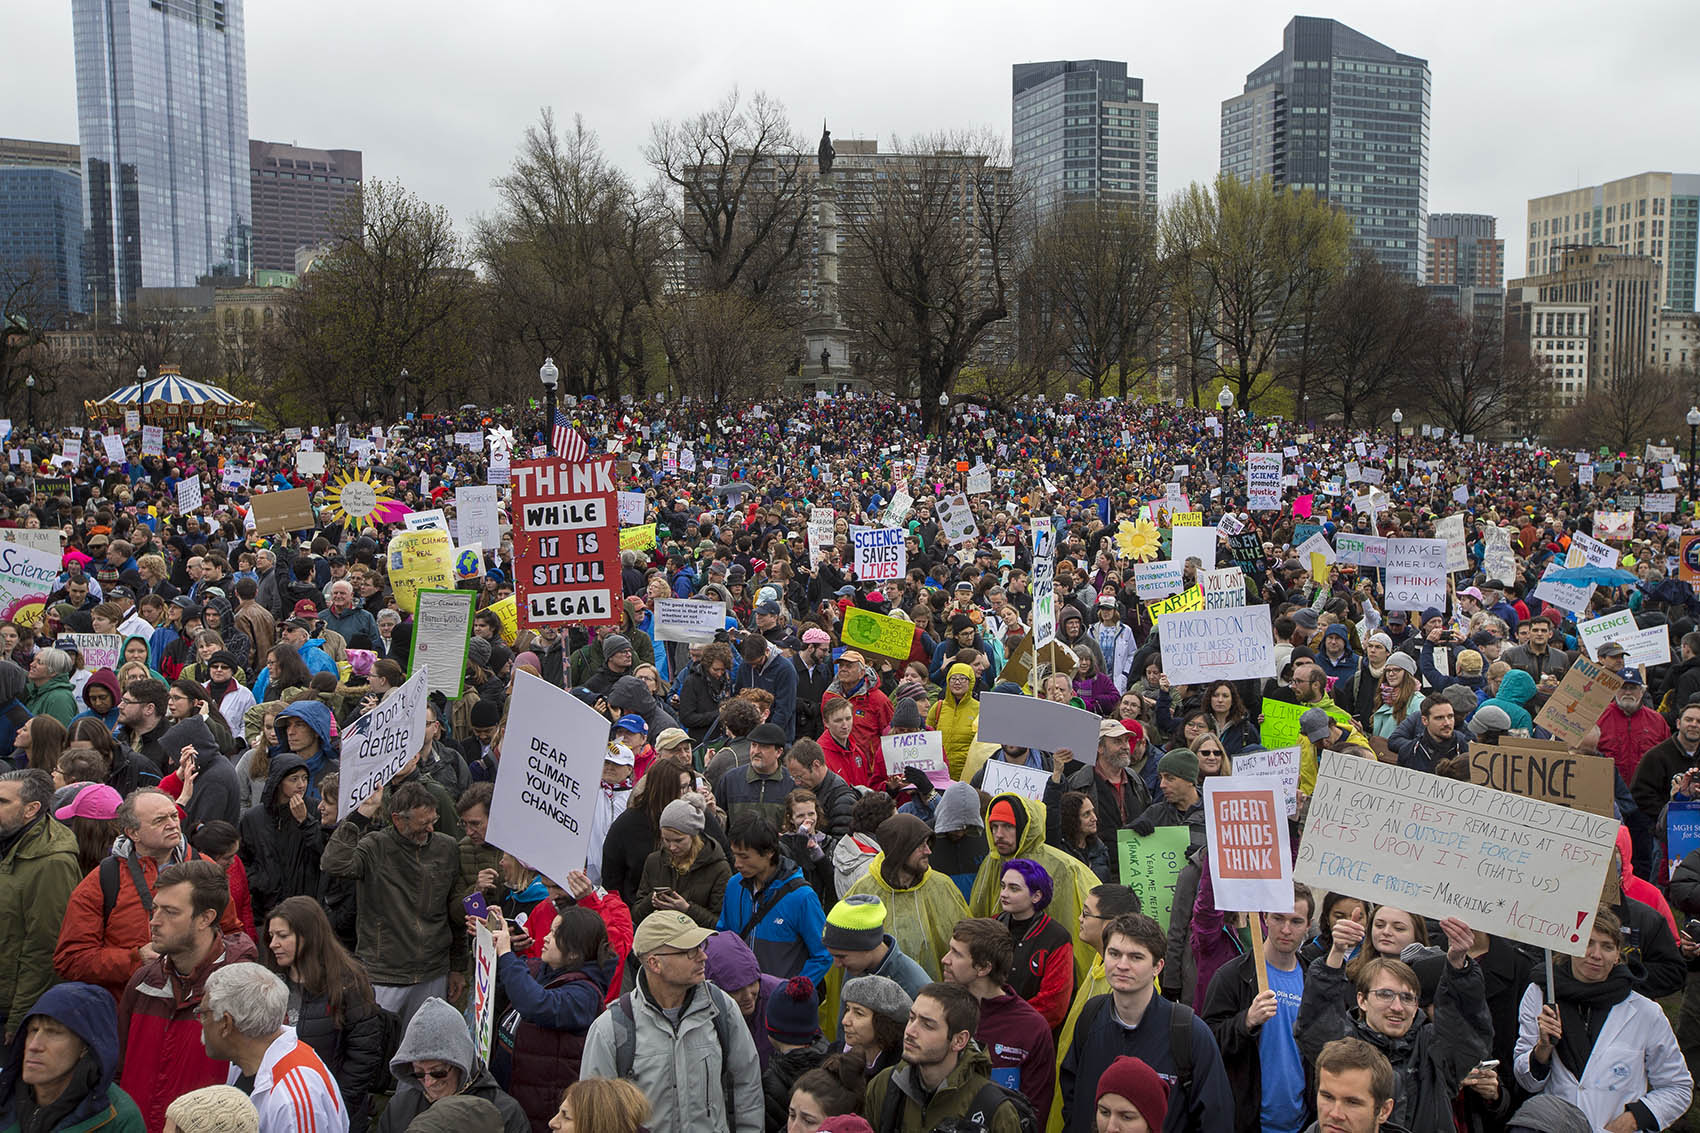 The crowd gathered on Boston Common Saturday for the March For Science. (Jesse Costa/WBUR)